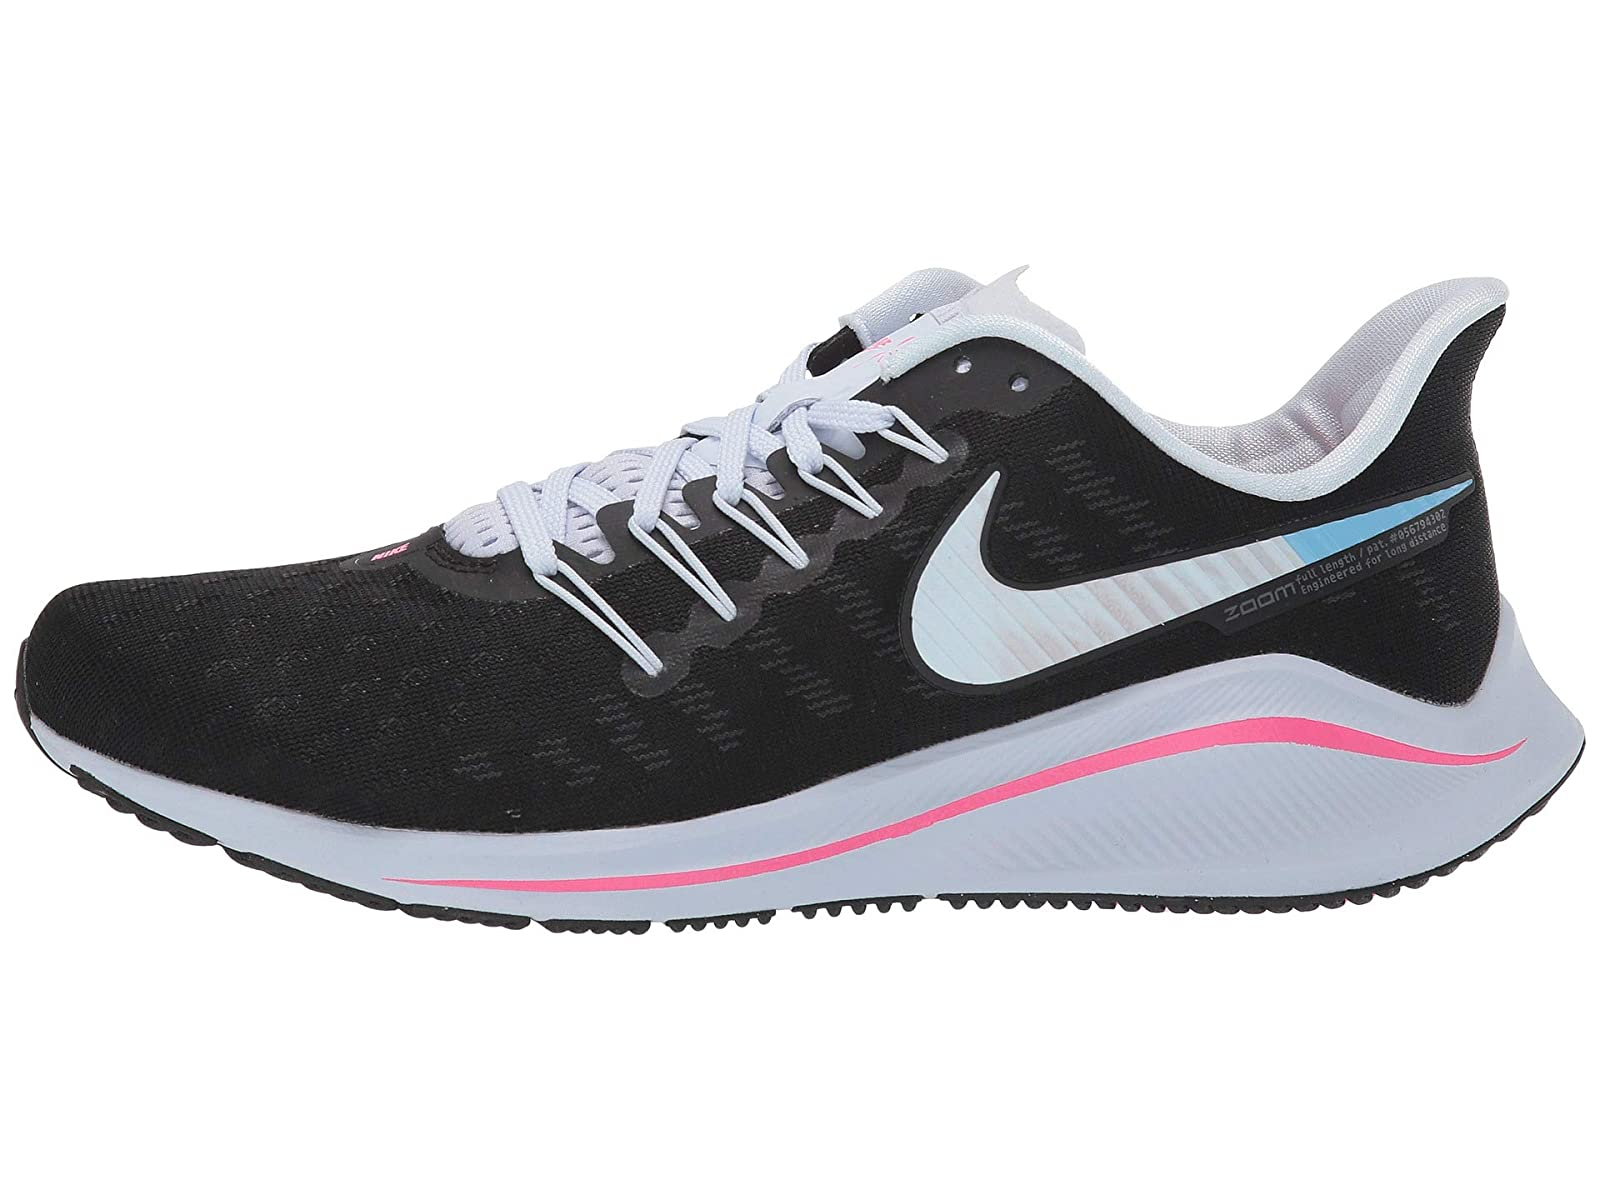 b6866cca3281 Details about Women's Sneakers & Athletic Shoes Nike Air Zoom Vomero 14